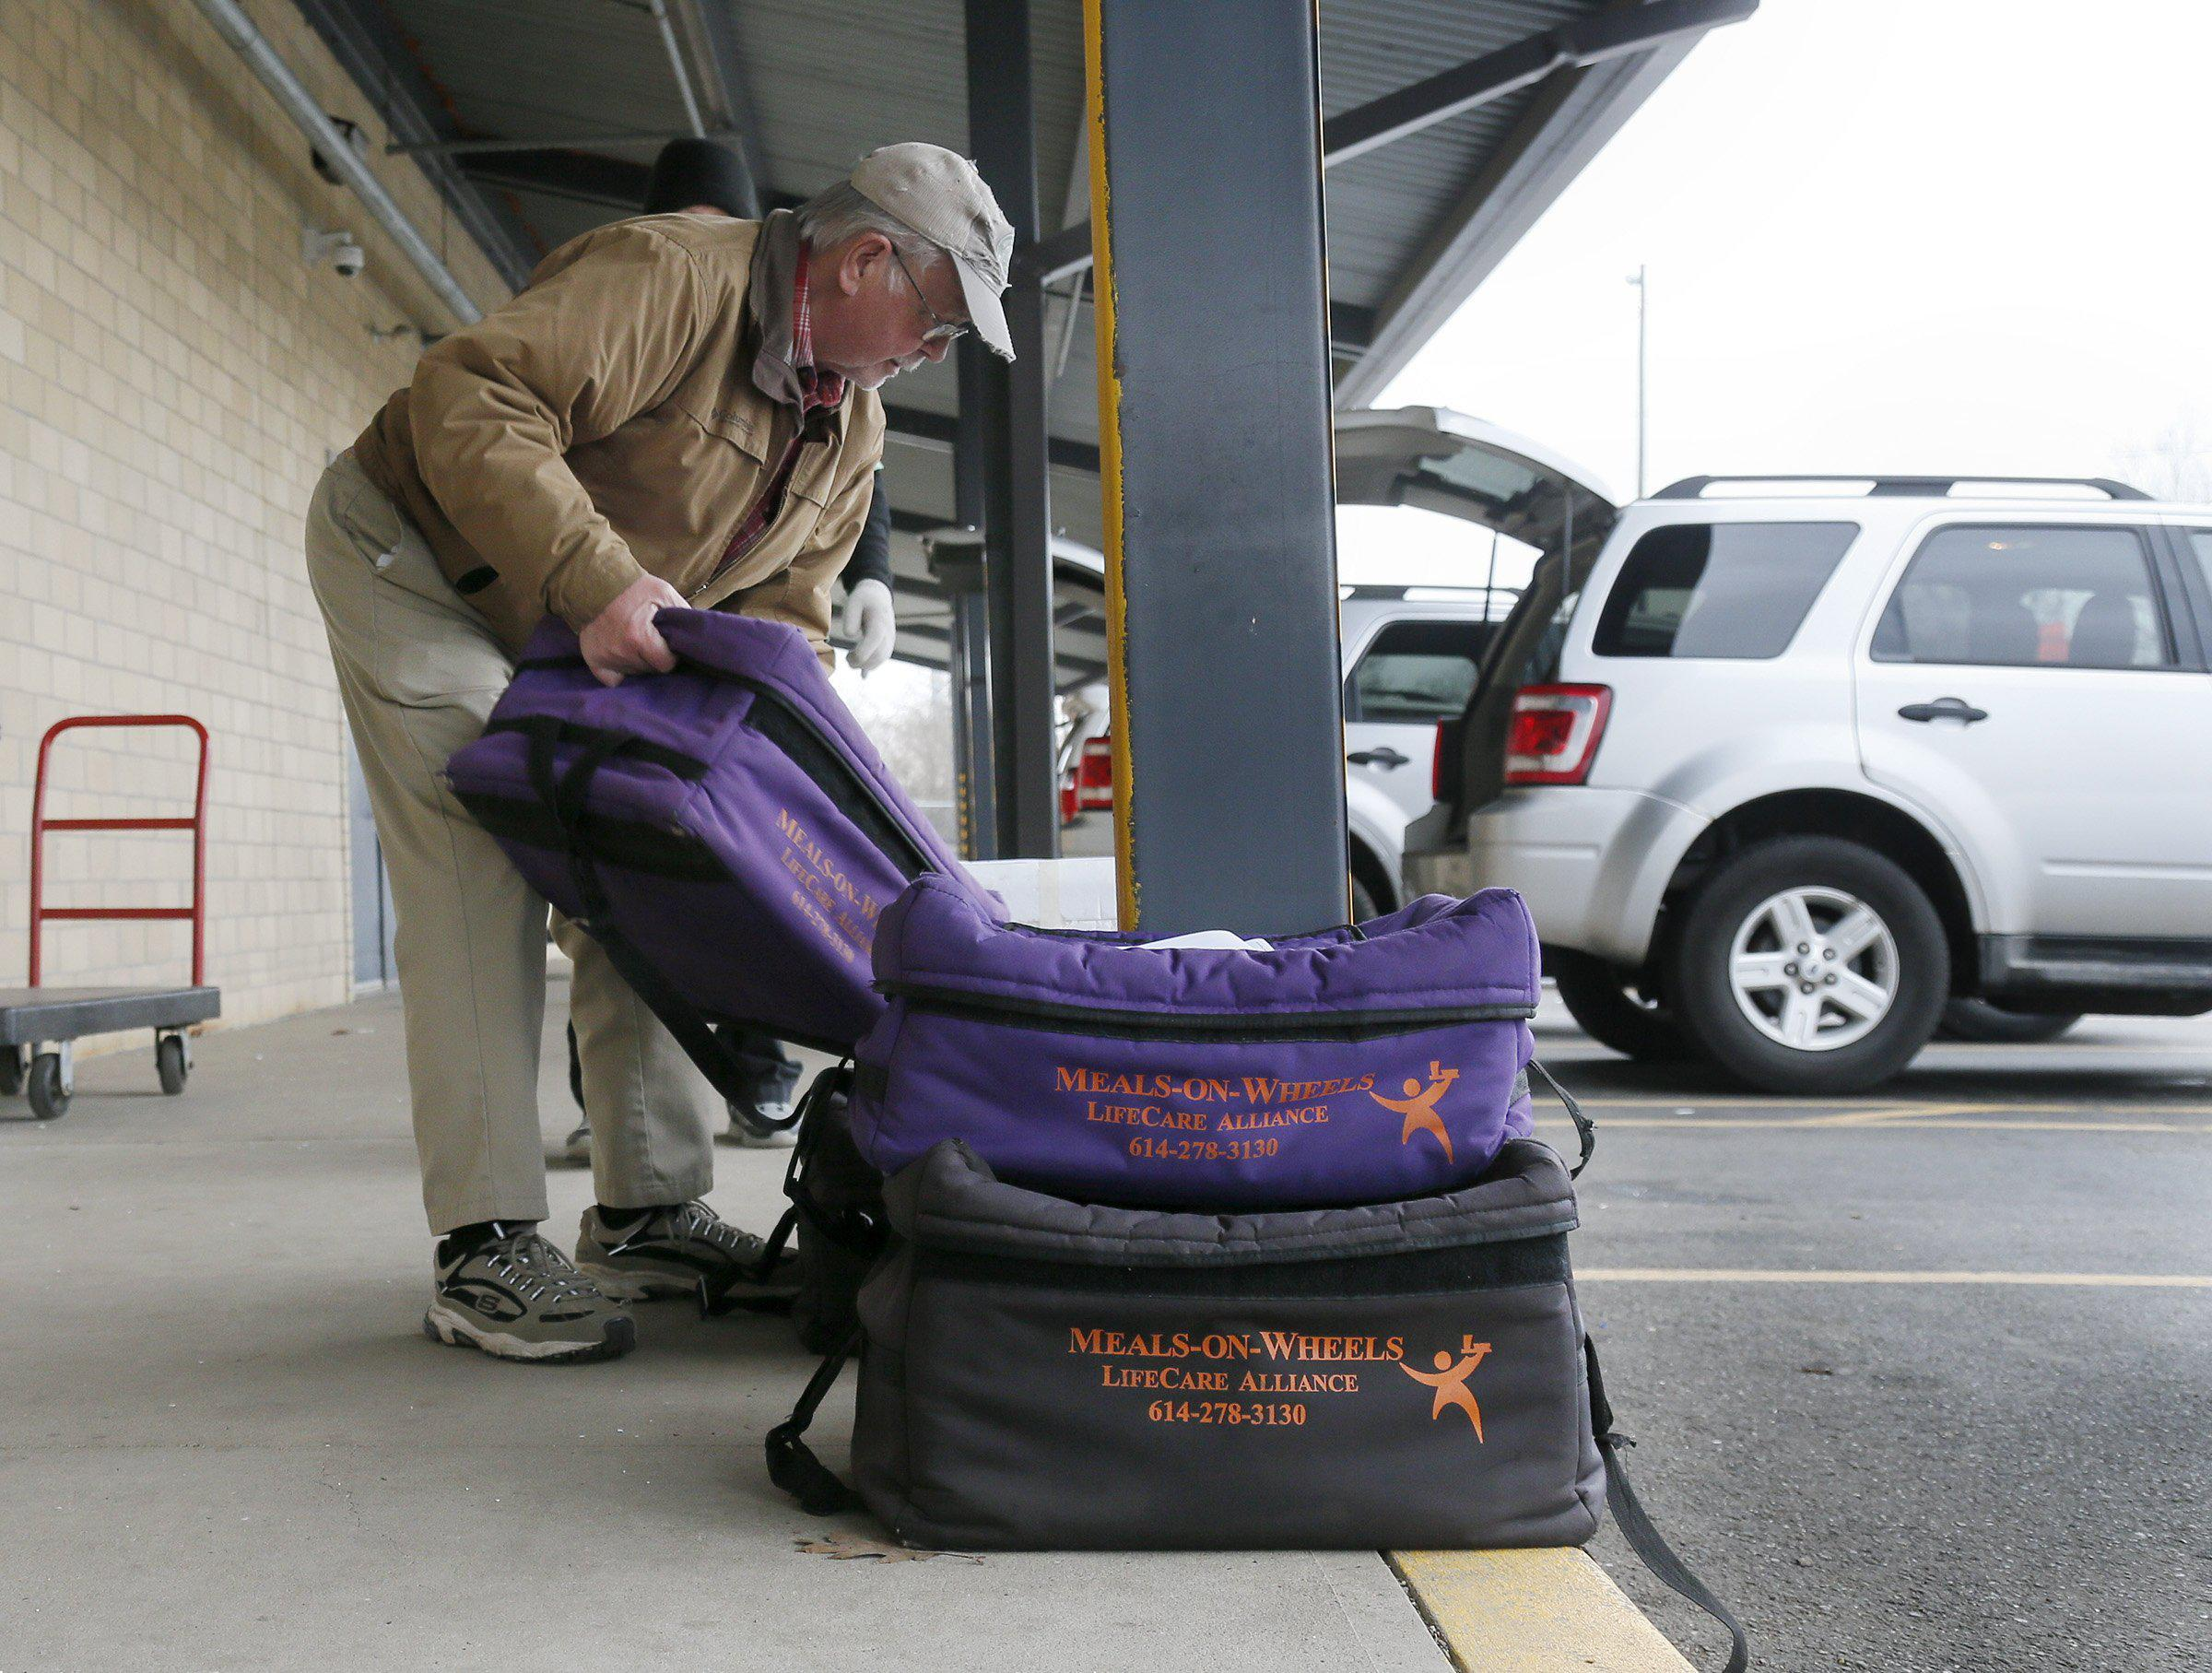 Volunteer Bill Abbott loads Meals-on-Wheels delivery bags into his vehicle.